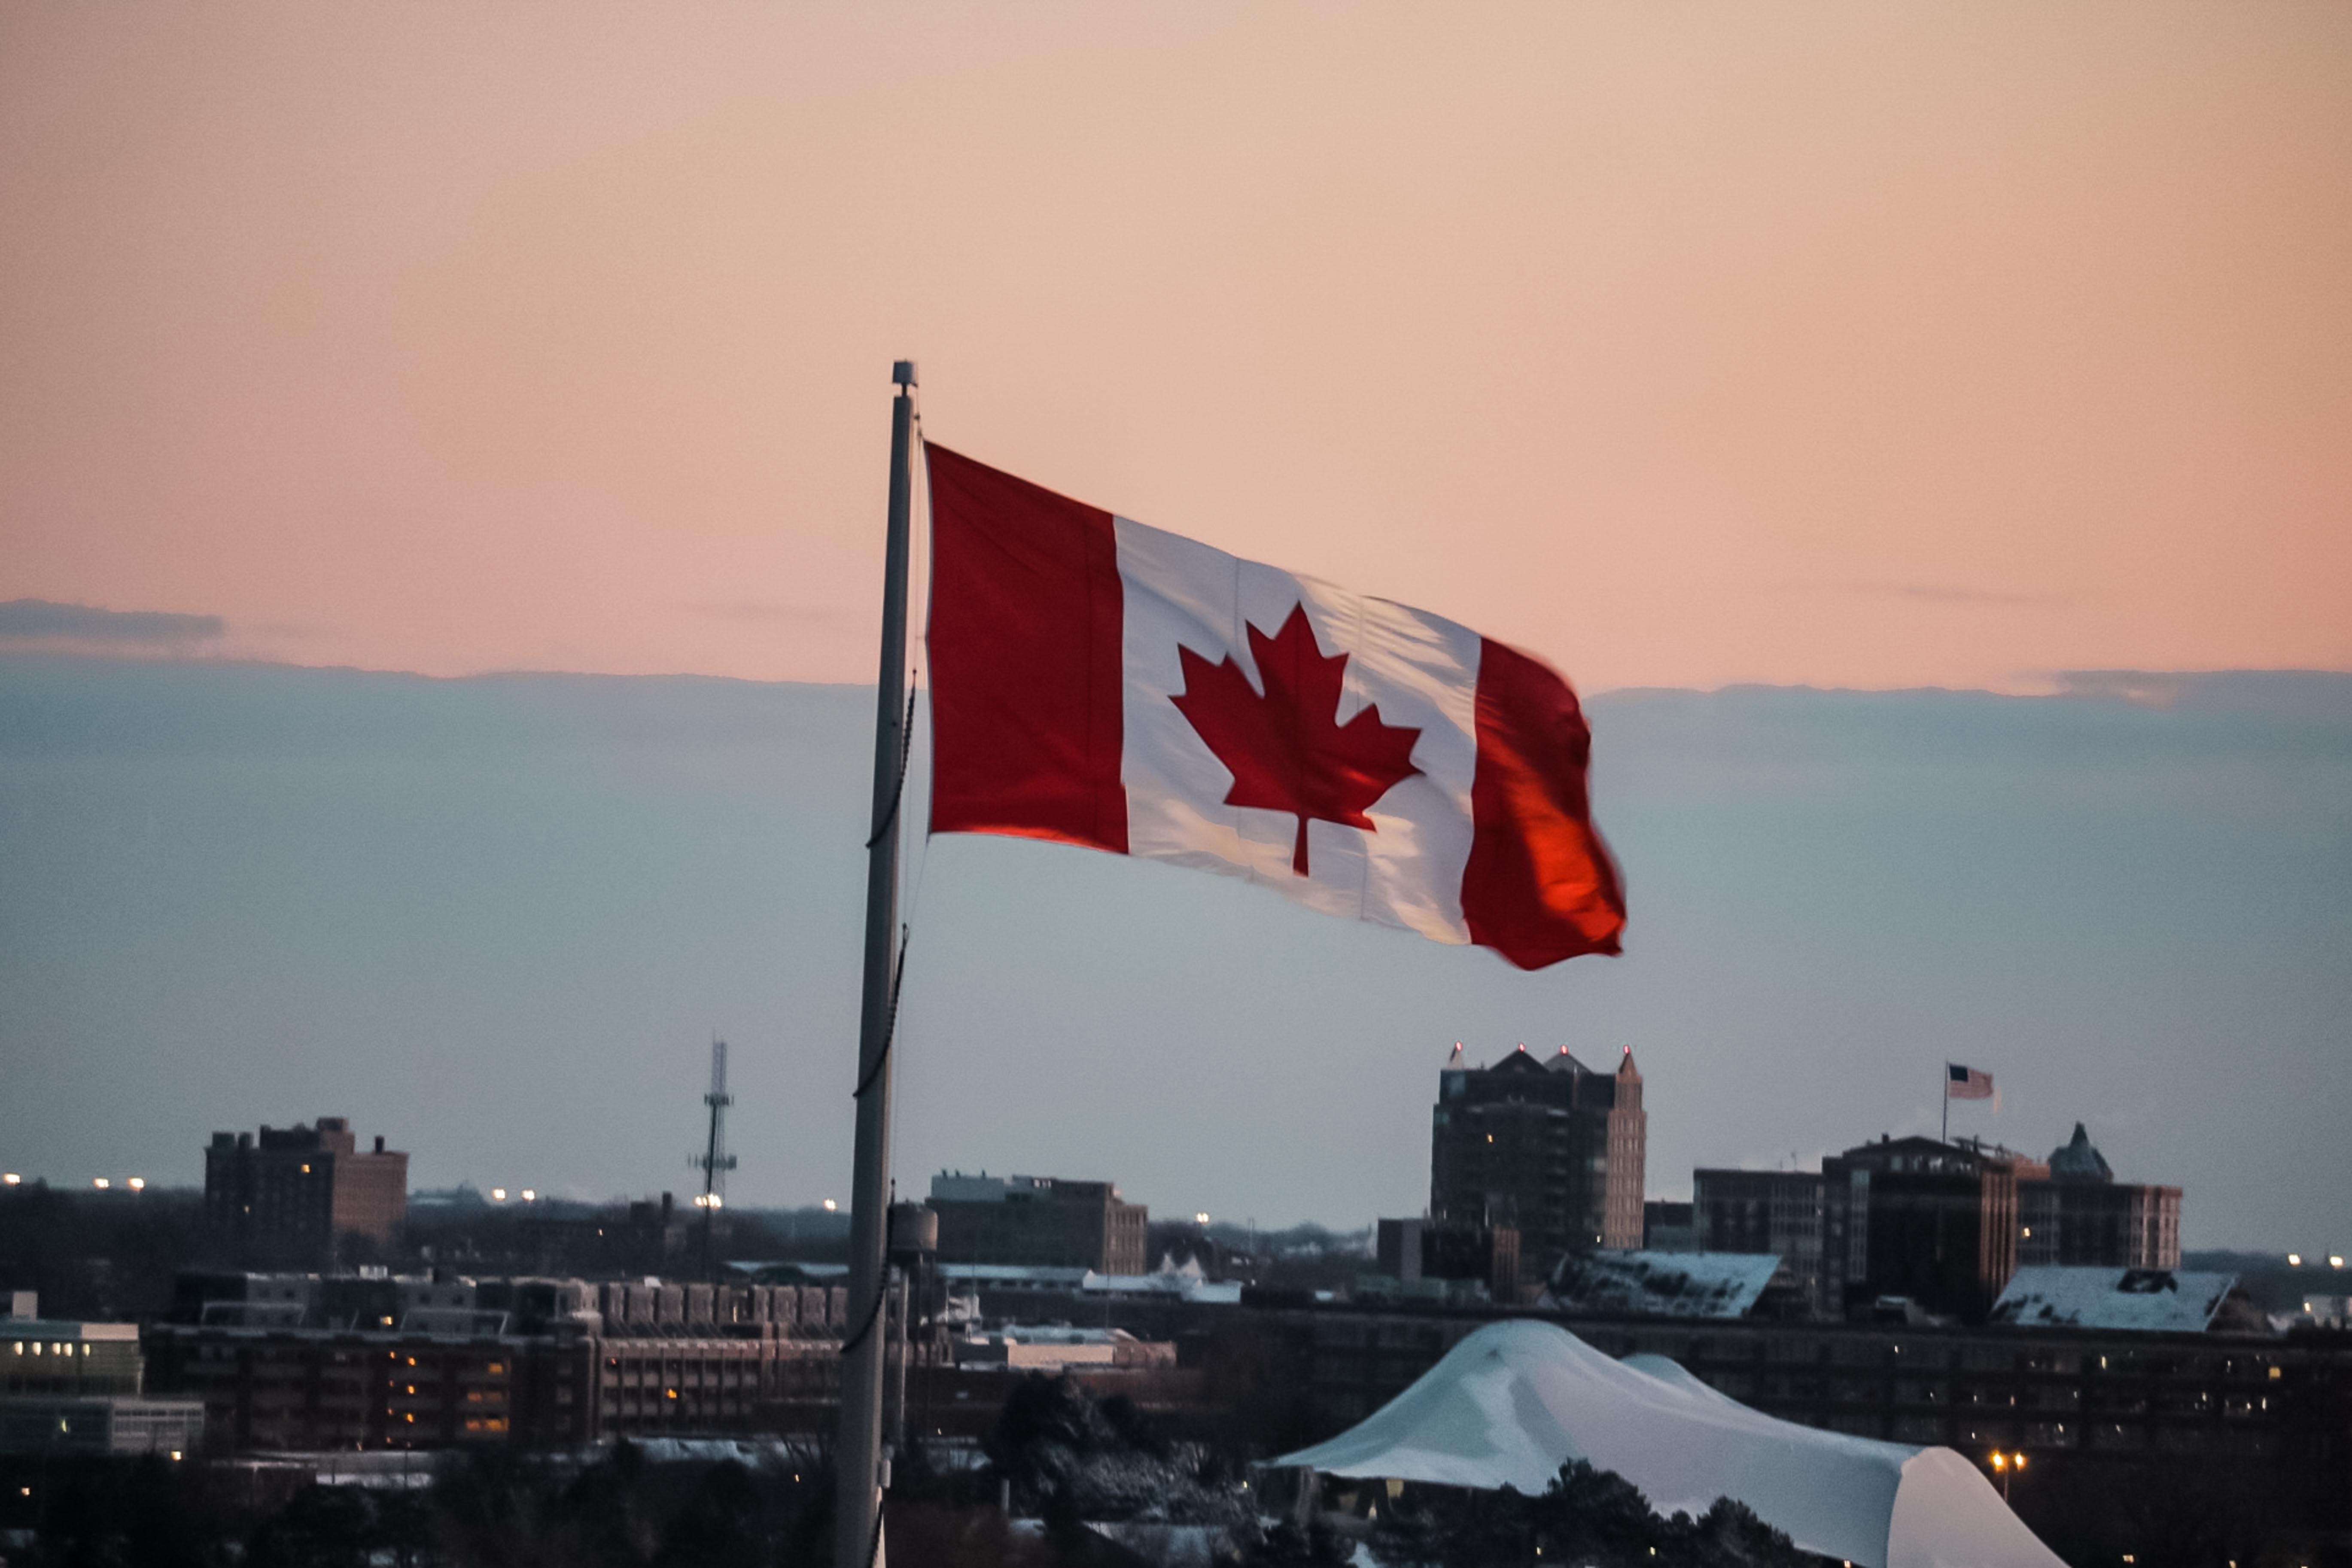 Tourism and Entertainment in Canada